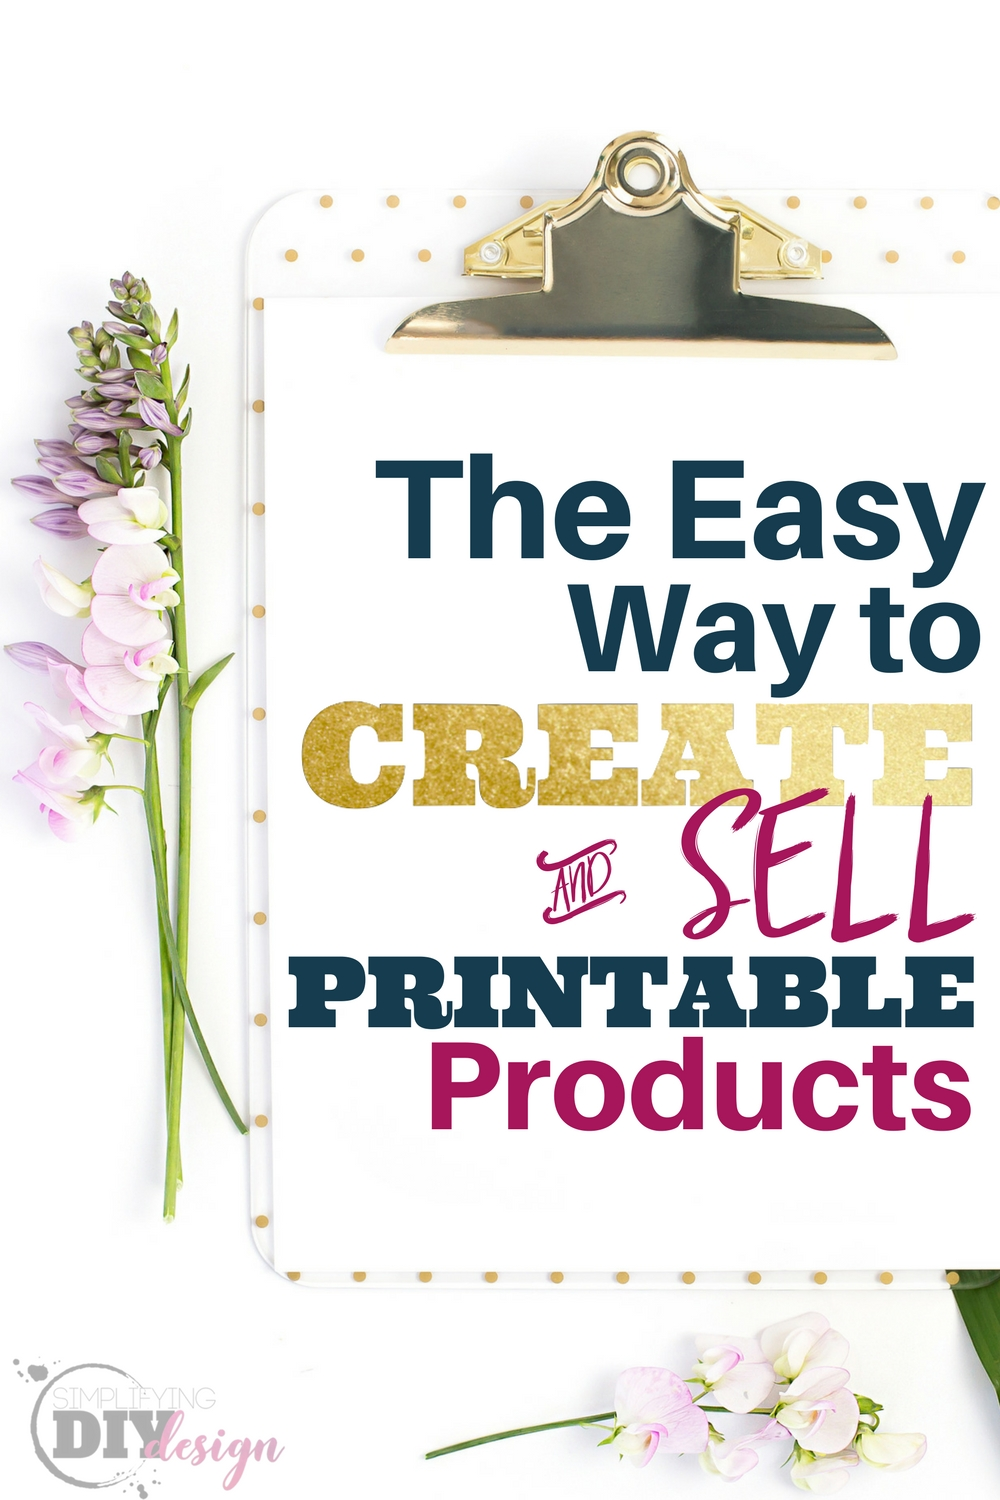 I never understood the power that printables could do for my business, I really honestly thought it was just another step to take when I already had 50 steps but since I started implementing these steps, it has created me so much income. I can't believe I'm actually making money blogging and it's not even that hard-- PLUS I can use other printable to grow my email list and nurture my email list with freebies!